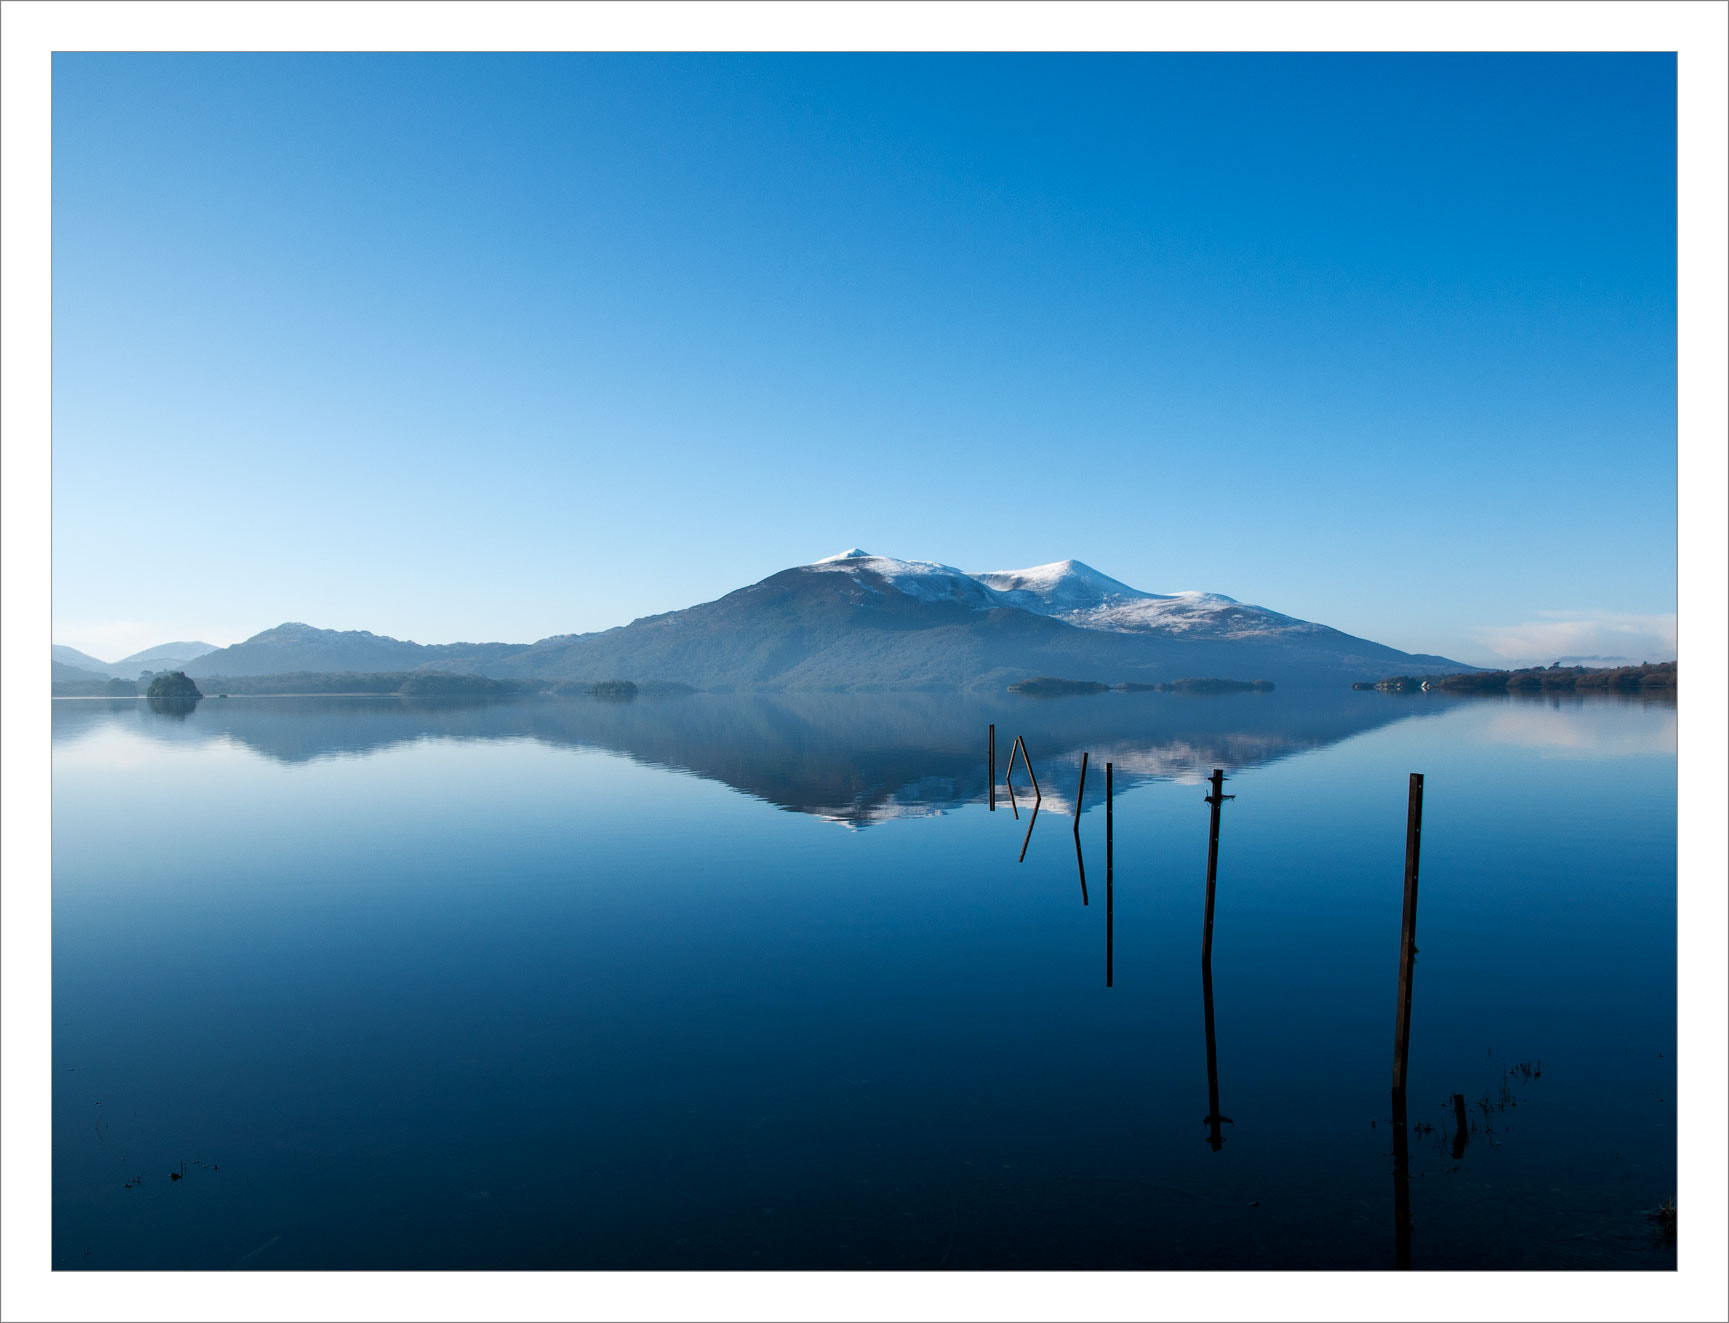 Photograph Serenity by Niall Brownen on 500px